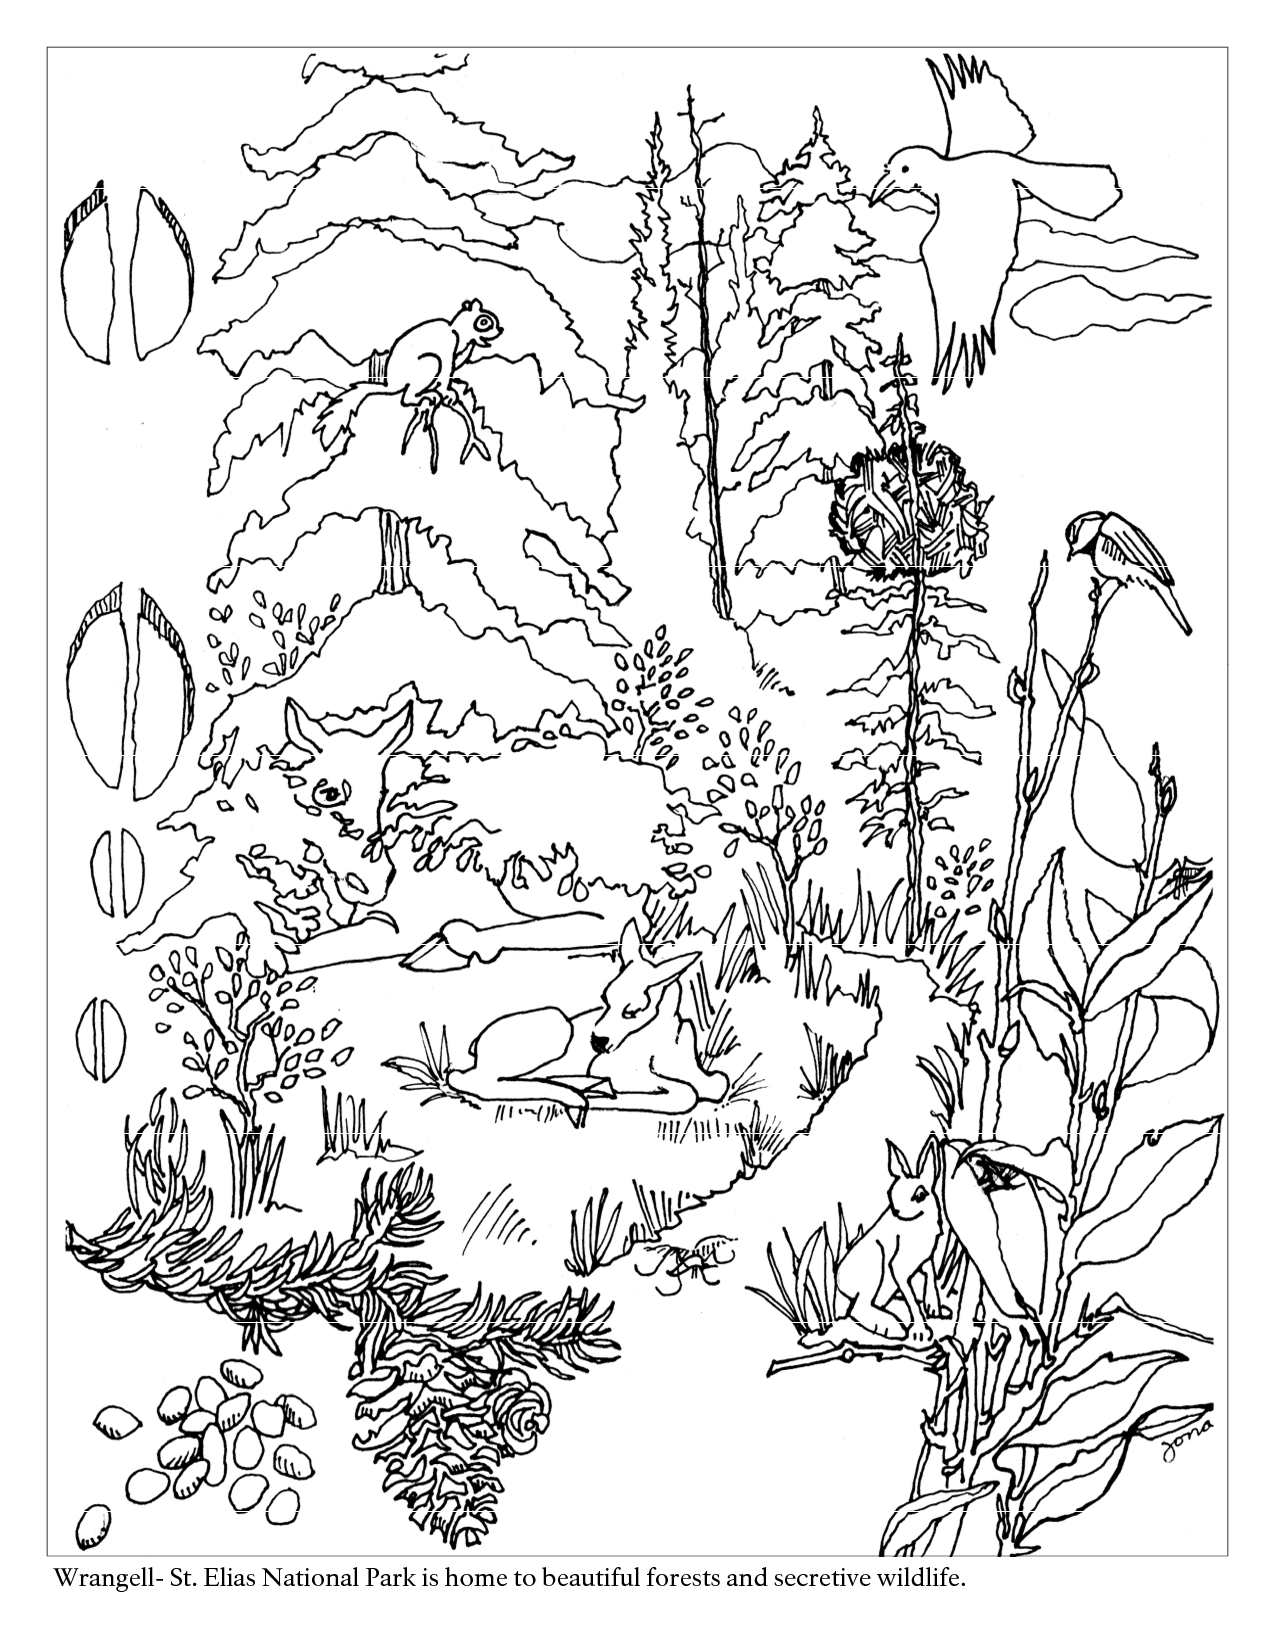 free coloring pages rainforest animals - photo#24